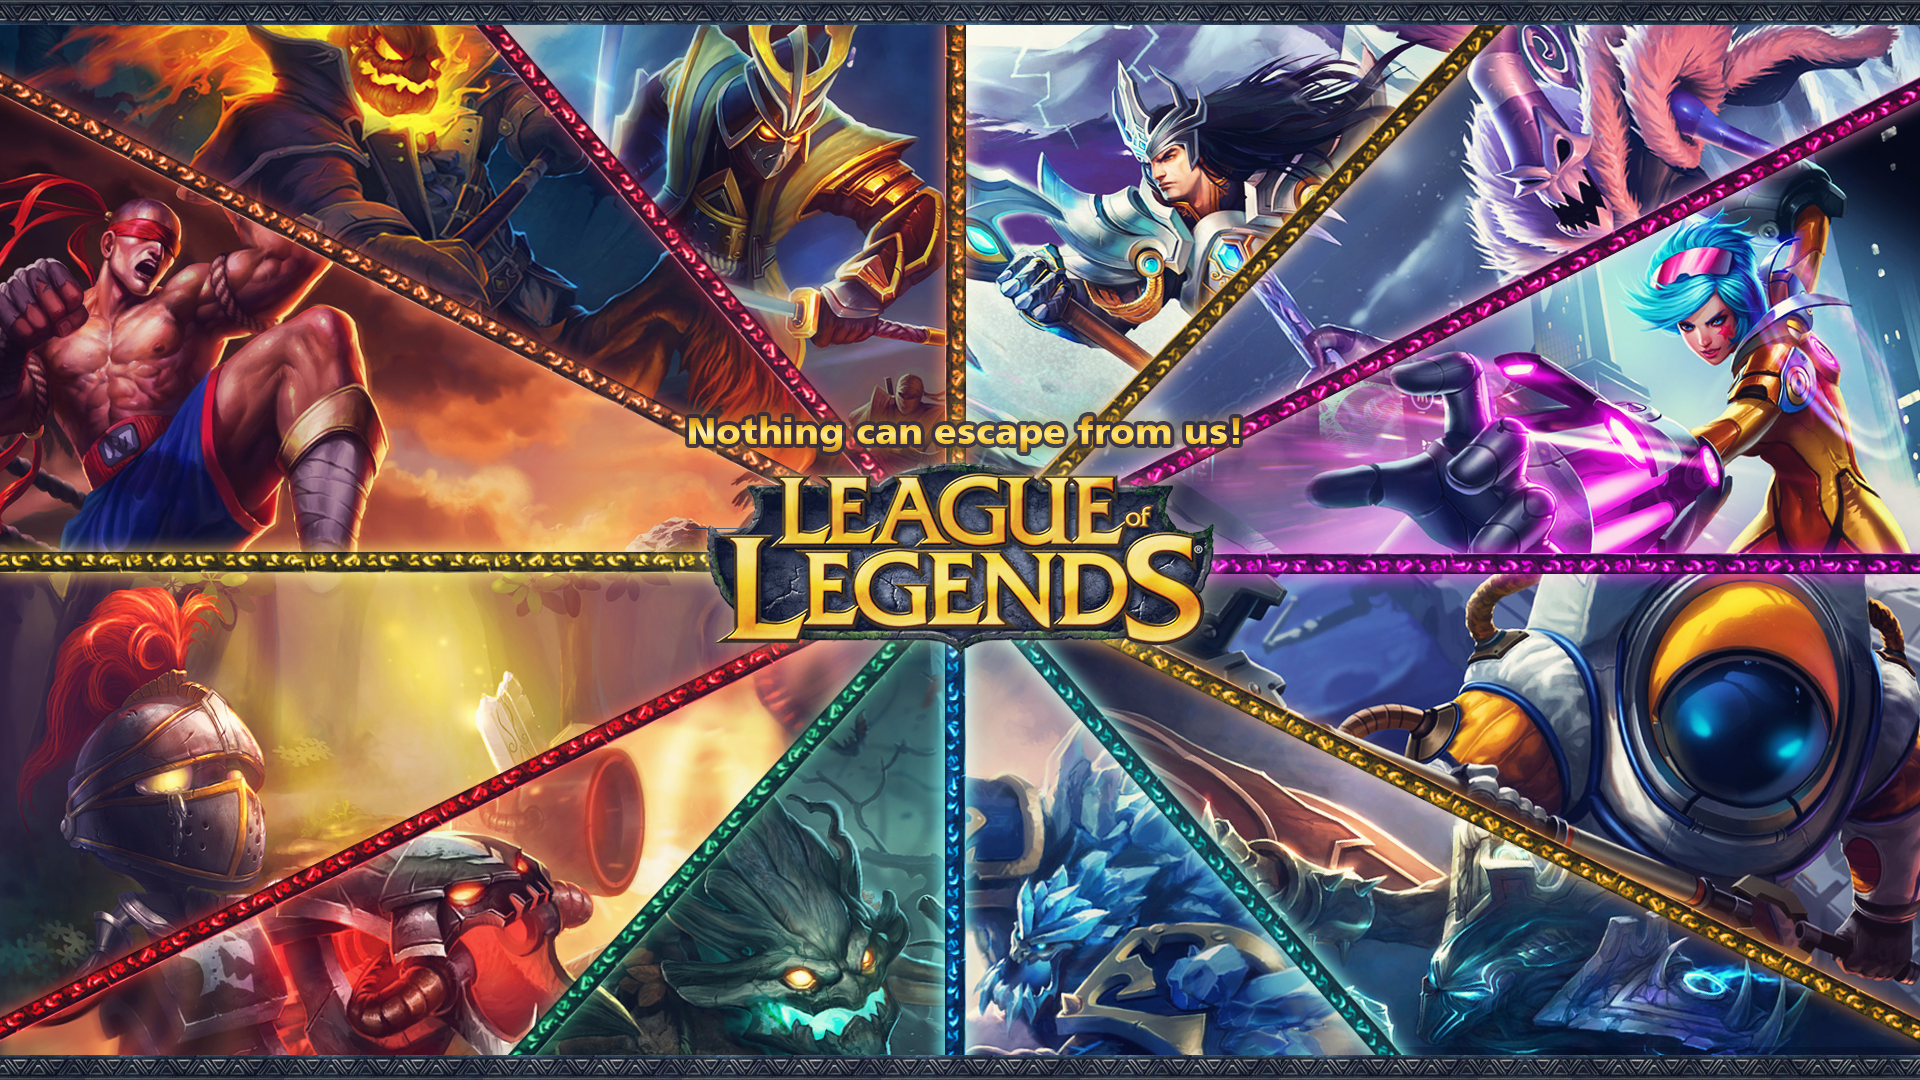 League Of Legends Jungle Wallpaper League Of Legends Poster